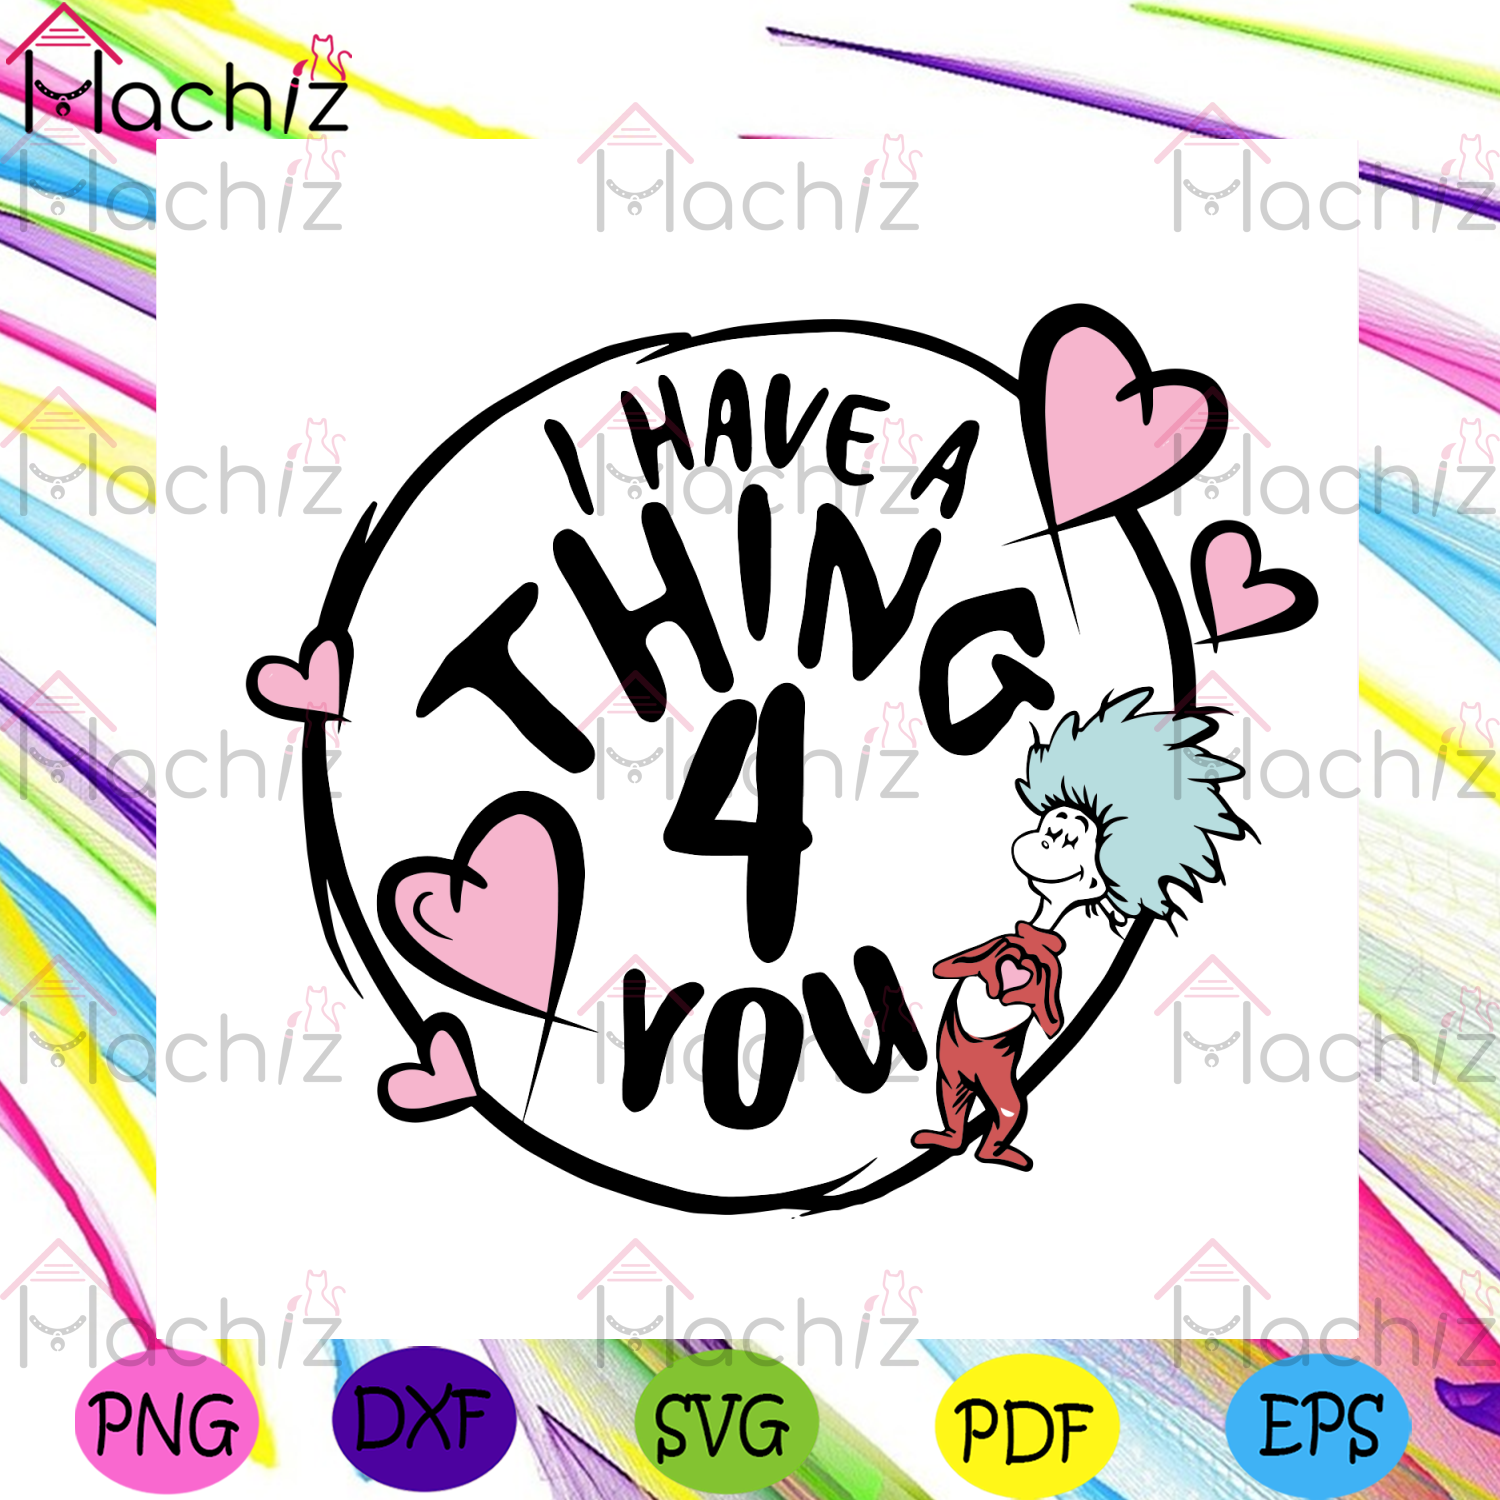 I Have A Thing 4 You Svg, Valentine Svg, Valentines Day Svg, Dr Seuss Svg, Dr Seuss Valentine Svg, Dr Seuss Love Svg, 4 You Svg, Valentines Gifts, Happy Valentine Svg, Dr Seuss Quote, Dr Seuss Book, Dr Seuss Gift, Cut File, Cricut Files